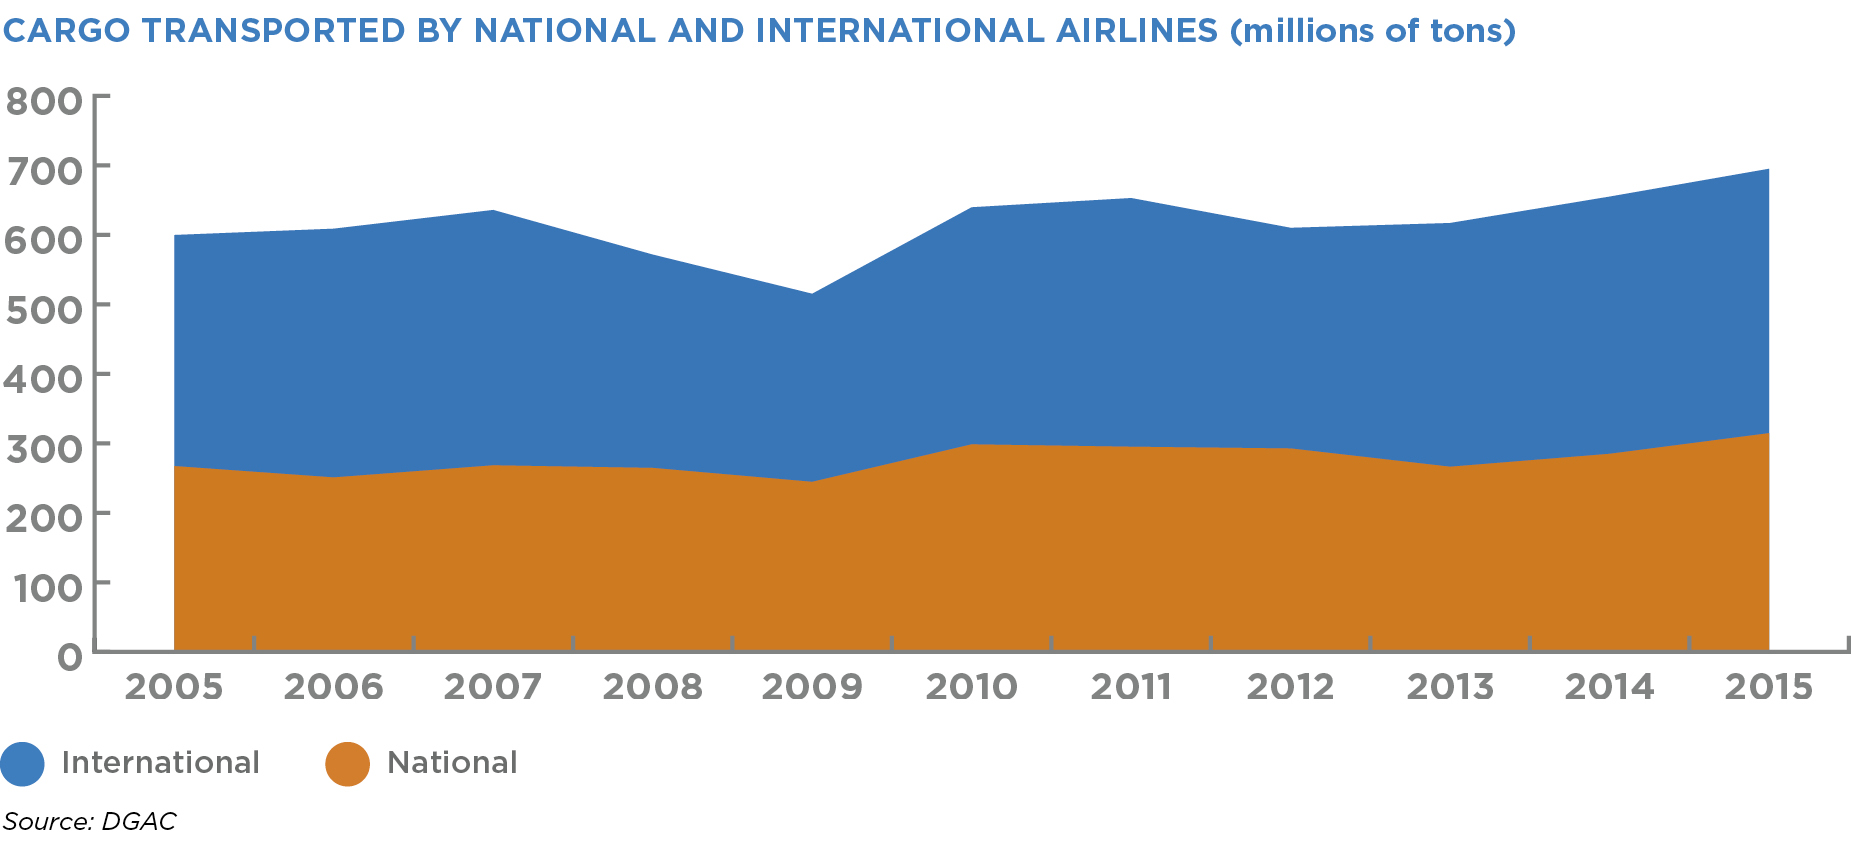 CARGO TRANSPORTED BY NATIONAL AND INTERNATIONAL AIRLINES (millions of tons)